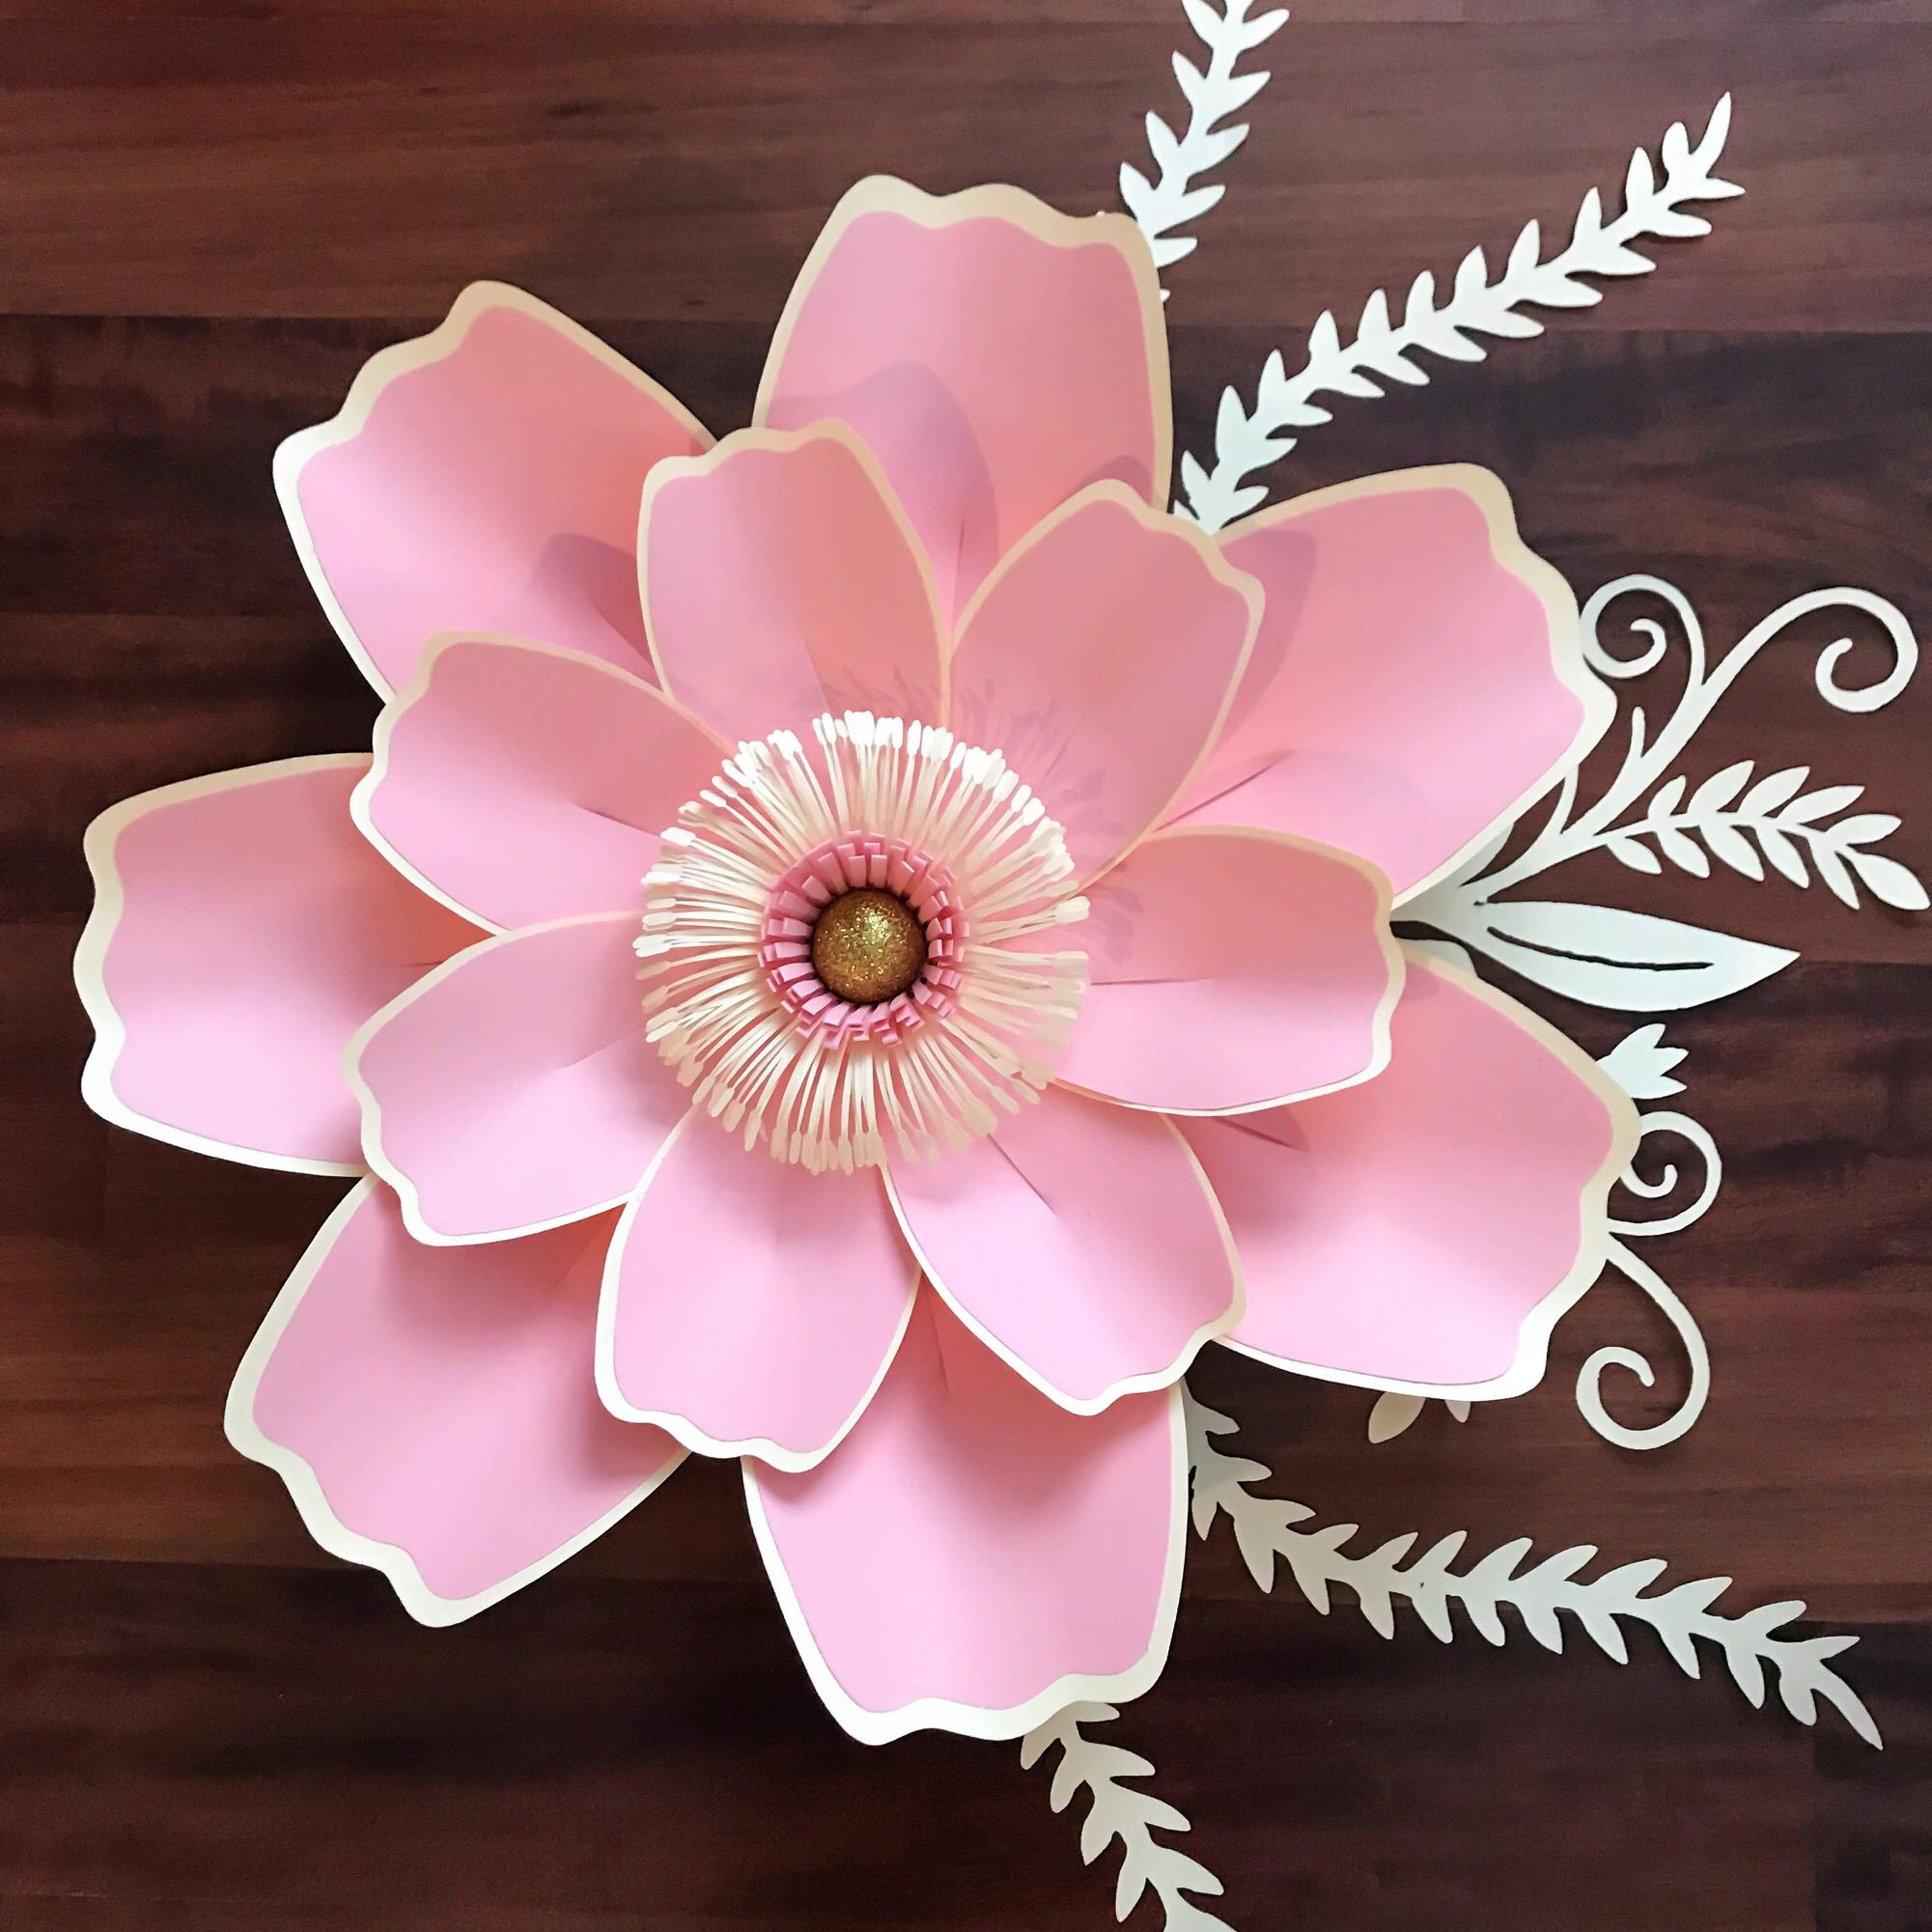 New Paper Flower Templates From The Crafty Sagittarius Available